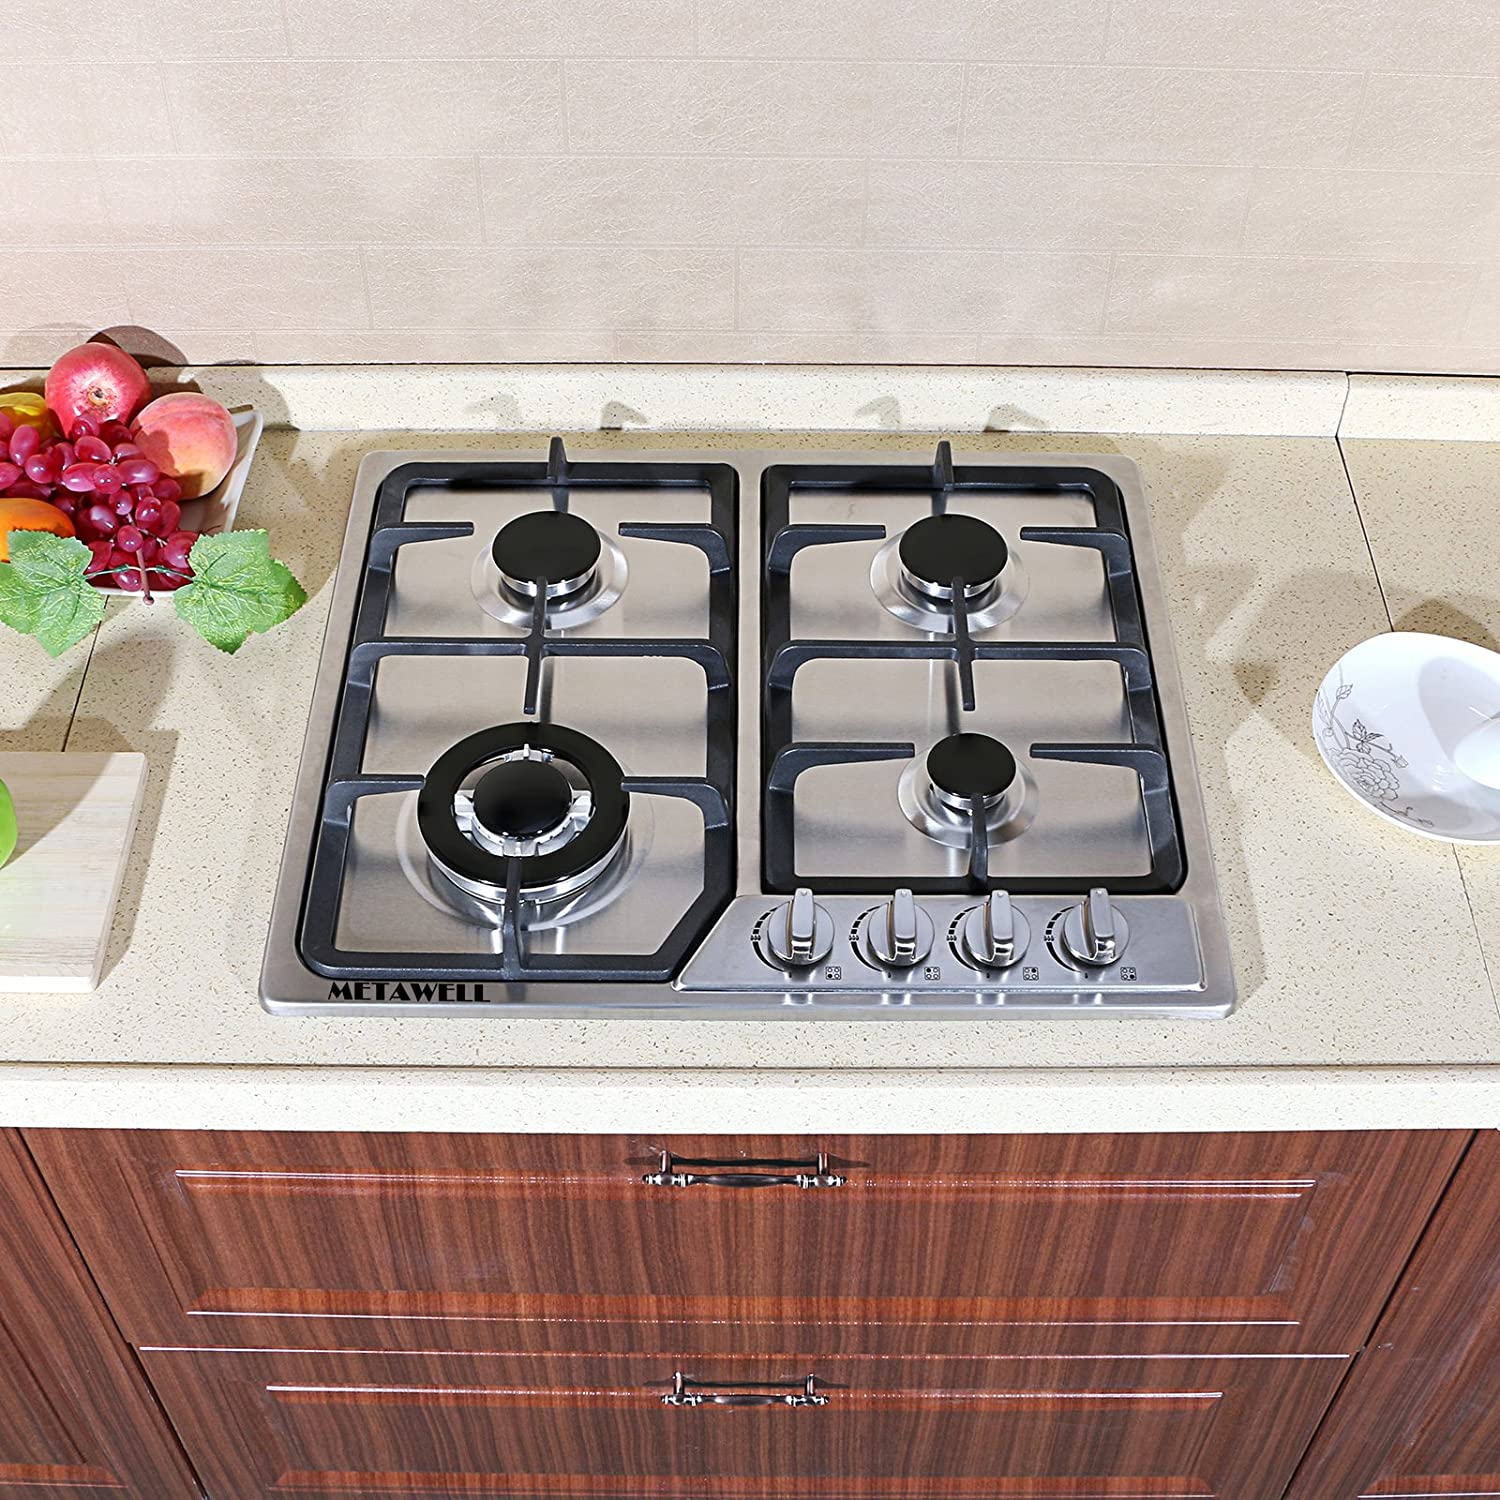 METAWELL 23' Stainless Steel 4 Burners Stove Natural Gas Hob Cooktops 11259Btu 3300W Cooker